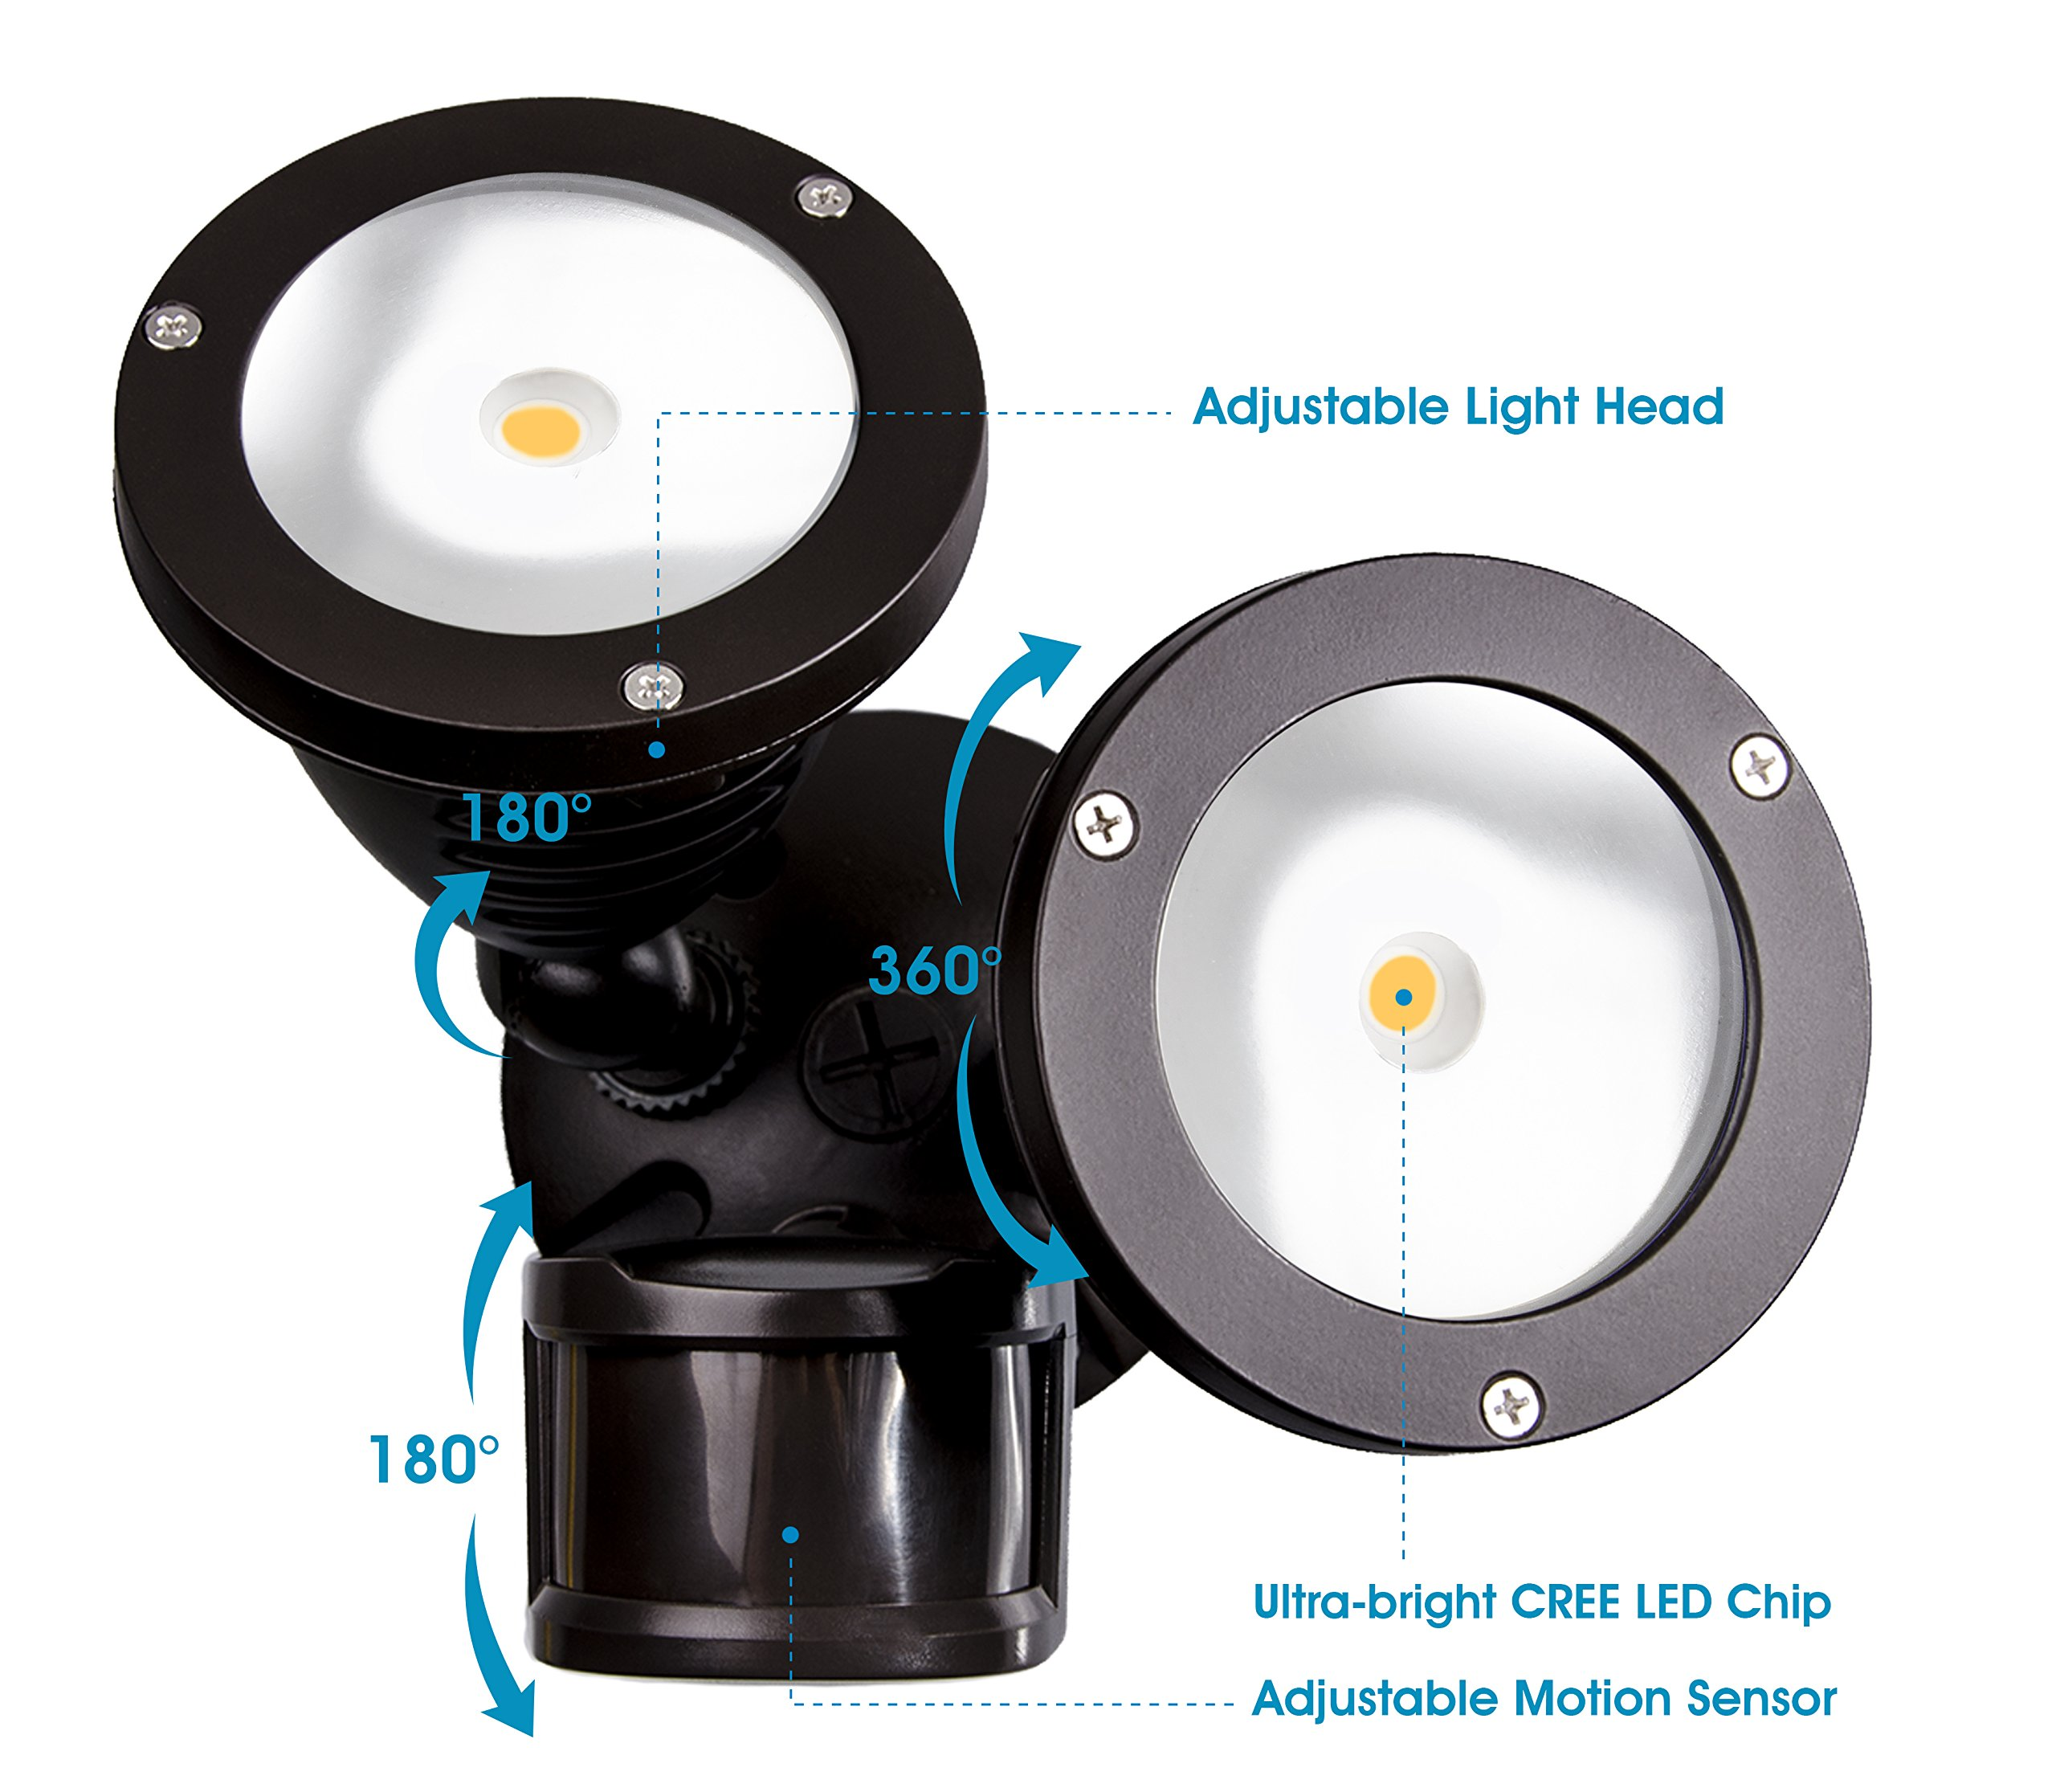 TOPELE Security Light, 2200LM Motion Sensor Outdoor Flood Light, Motion Activated Landscape Lighting, IP65 Waterproof, Adjustable Head with CREE LED Source for Home, Garden by TOPELE (Image #7)